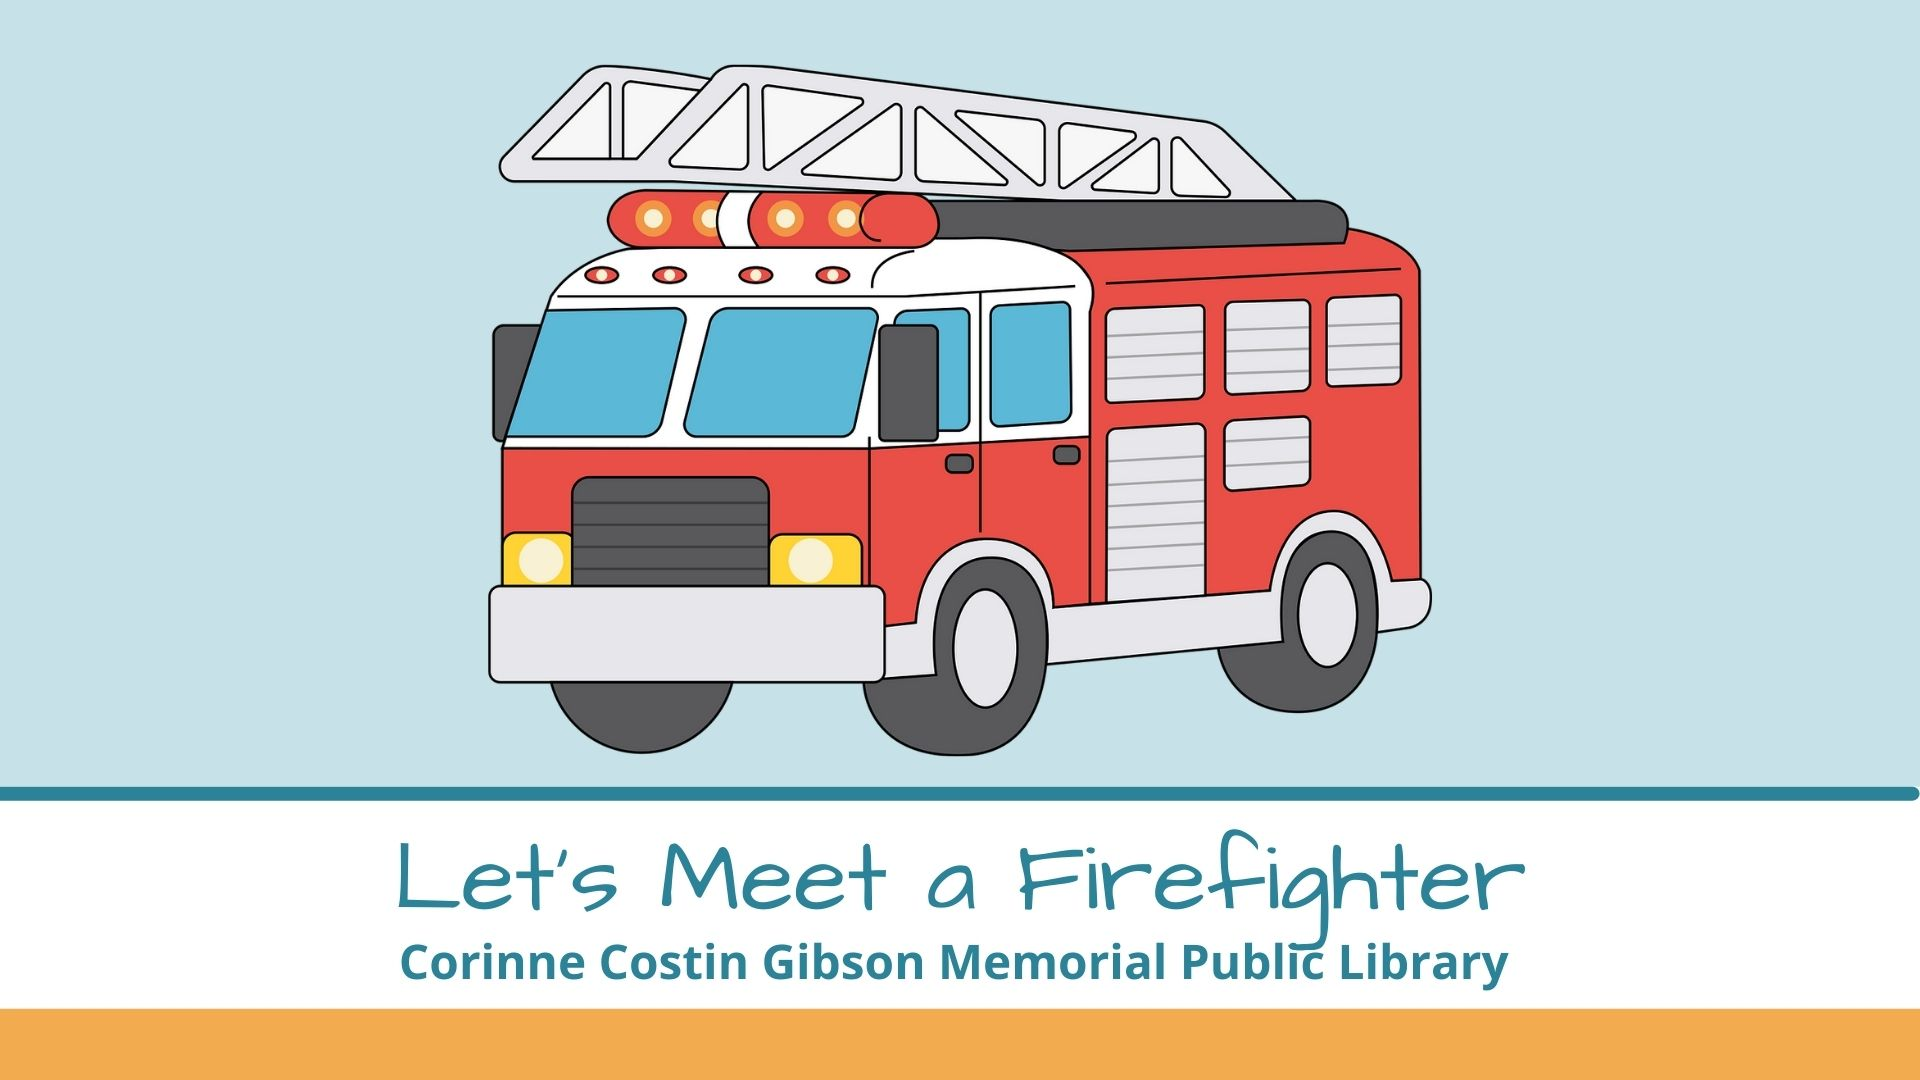 Image of a firetruck for the Let's Meet a Firefighter program.